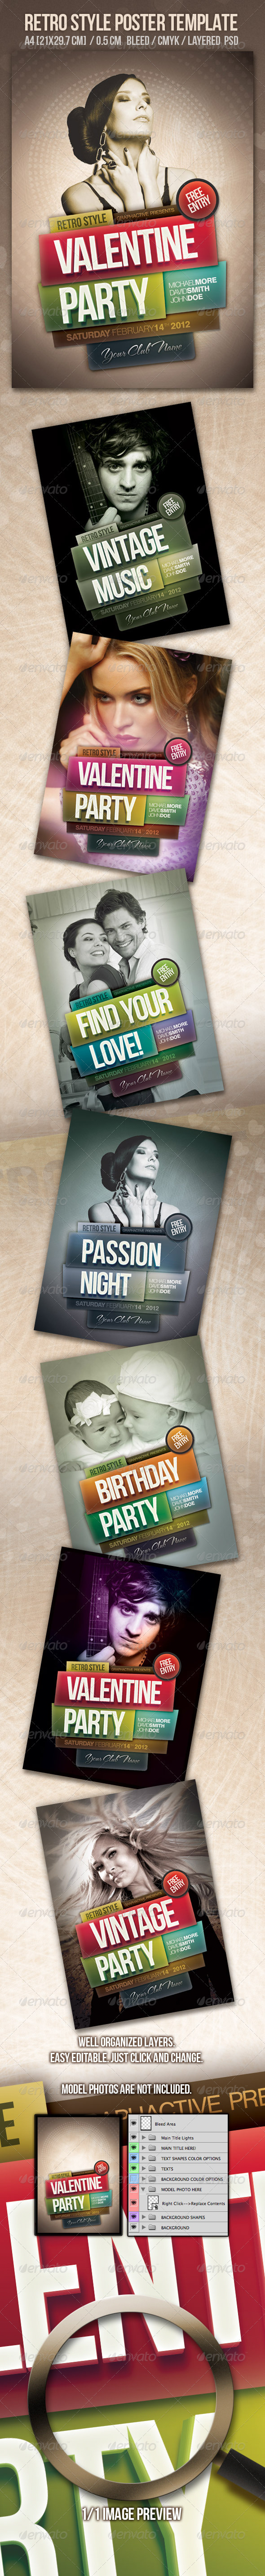 Vintage Style Poster Design Template - Clubs & Parties Events